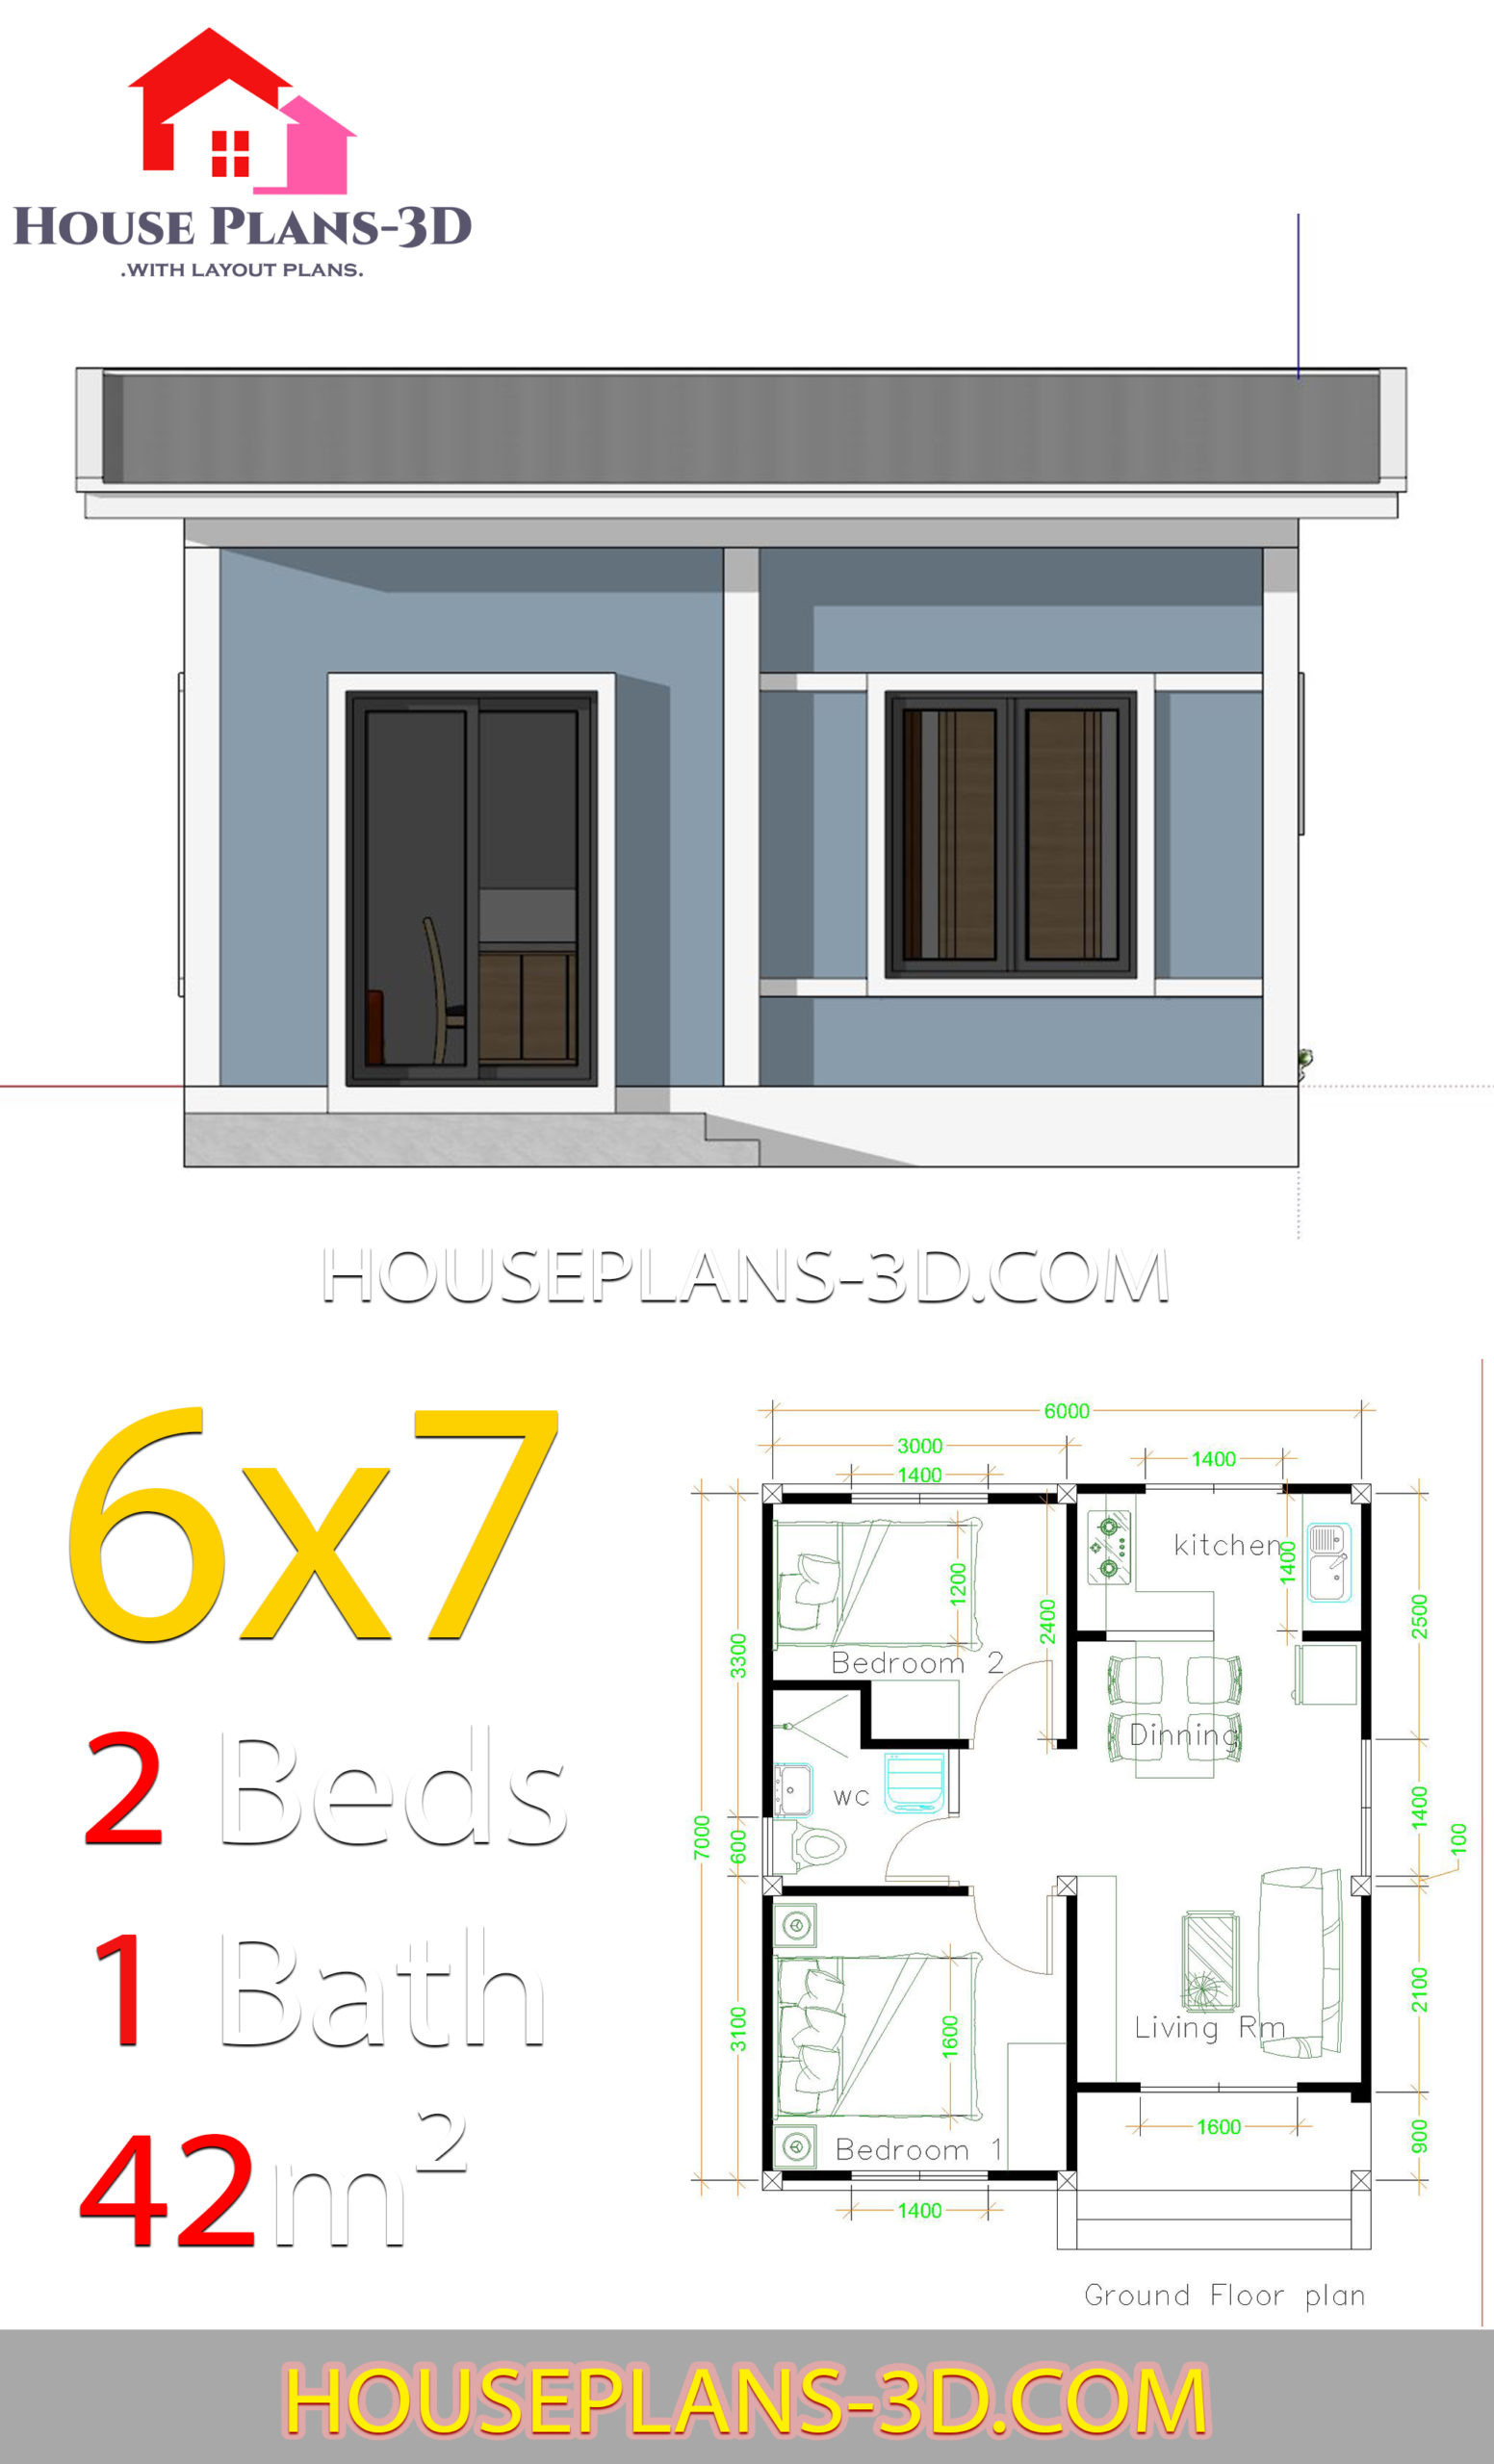 House Plans with Simple Roof Designs Luxury Simple House Plans 6x7 with 2 Bedrooms Shed Roof House